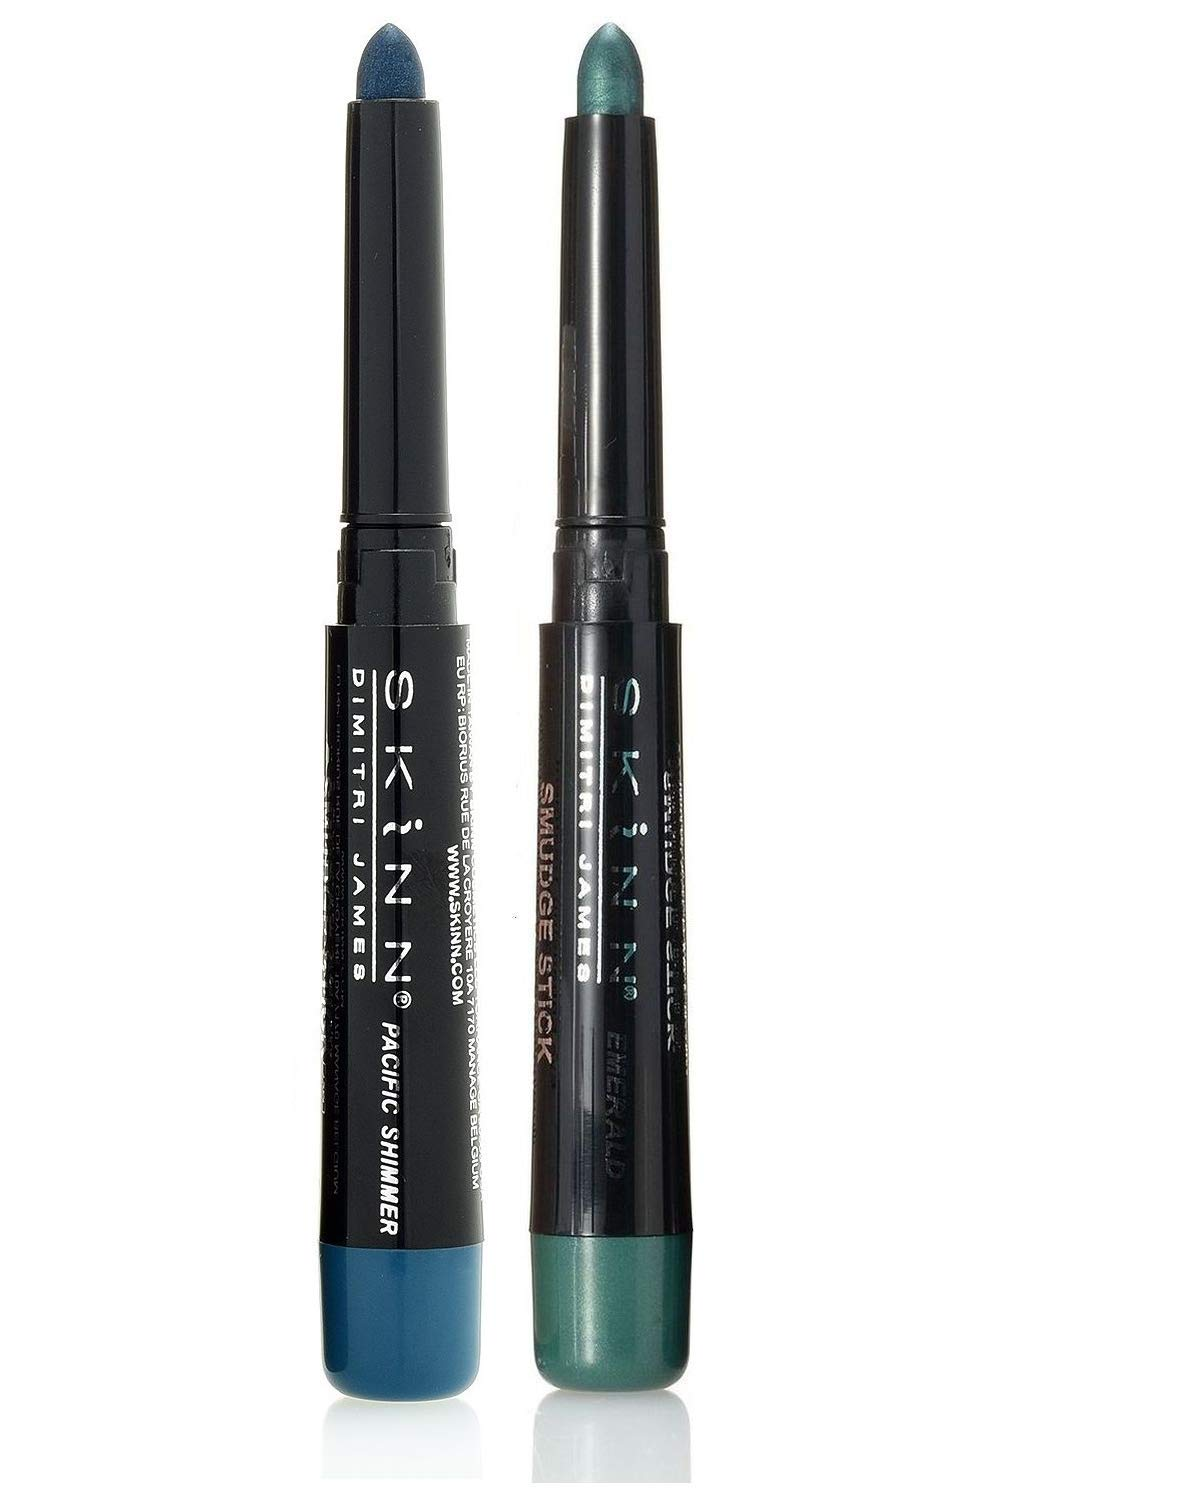 Skinn Cosmetics Smudge Stick for Eyes - Set of 2 Eye Pencils - Pacific Shimmer & Emerald